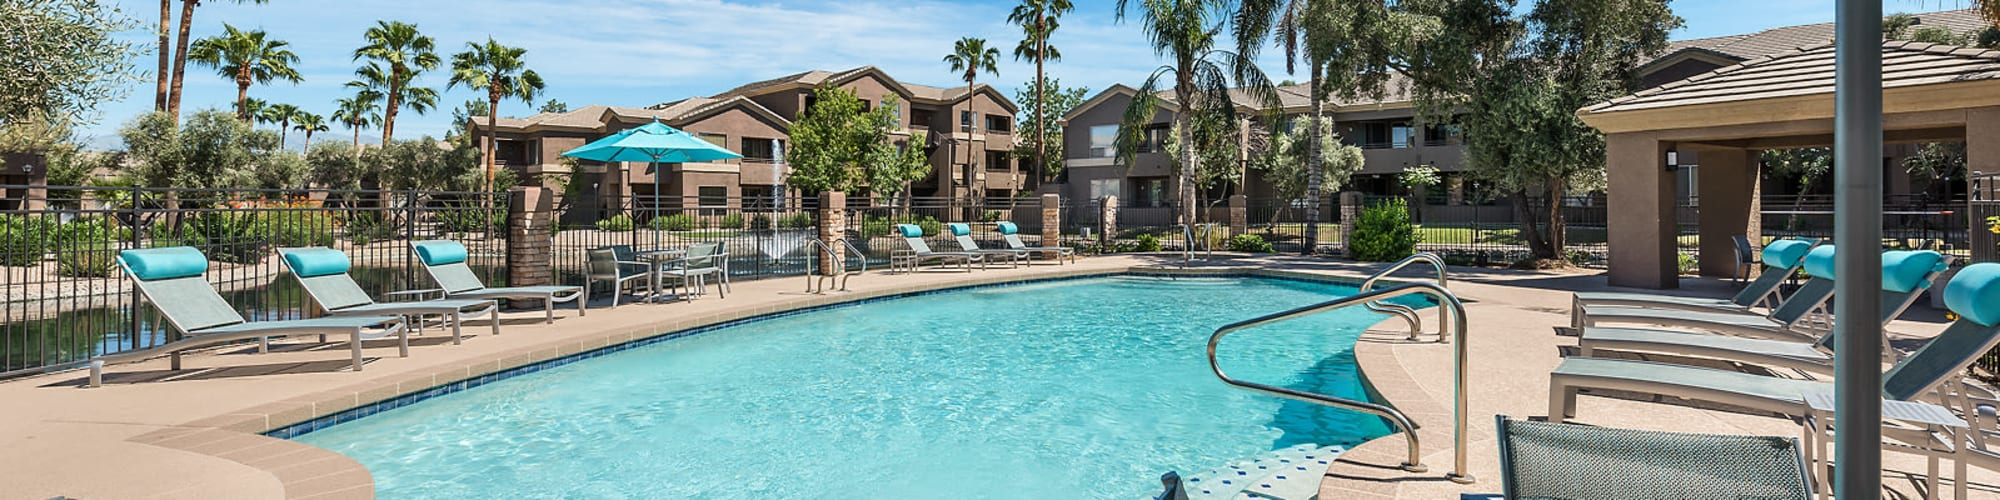 Schedule a tour of Laguna at Arrowhead Ranch in Glendale, Arizona